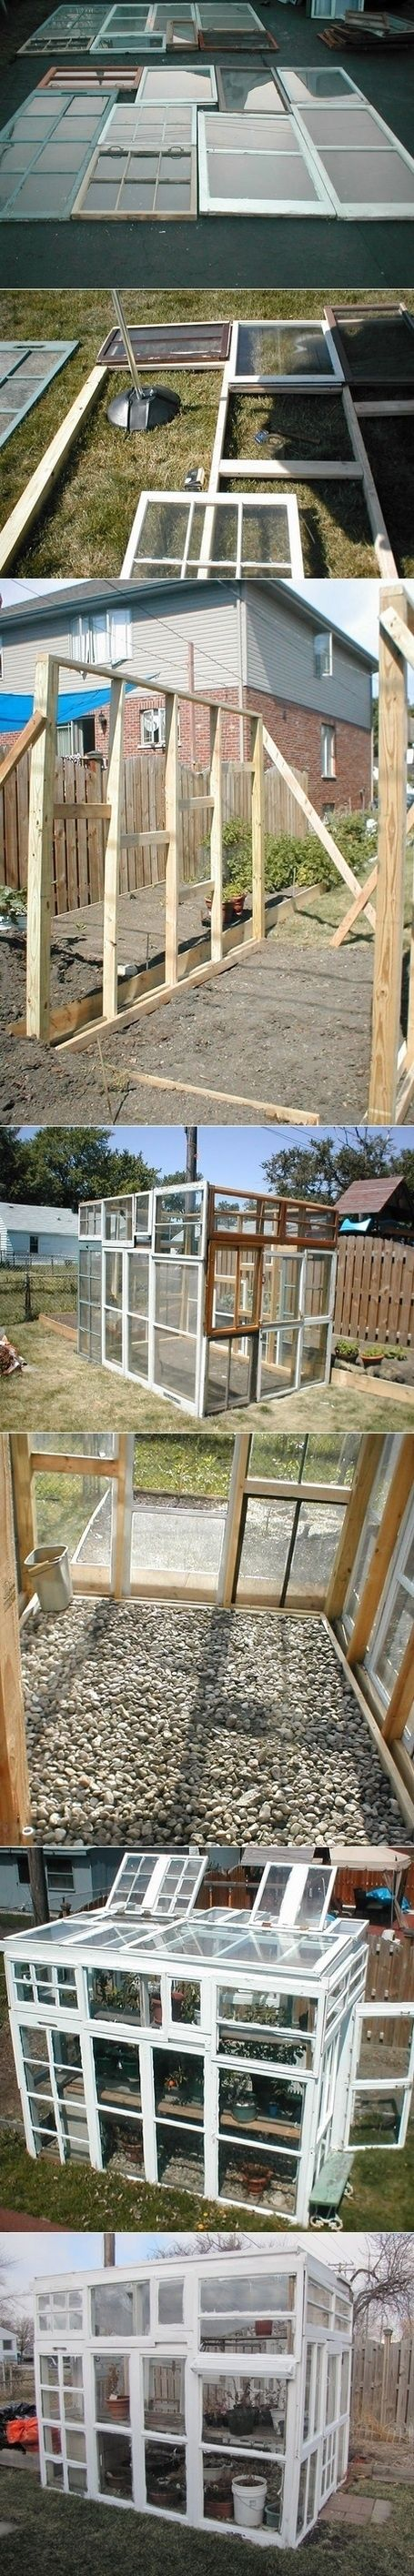 Build a Greenhouse With Old Windows by Dorey's Designs